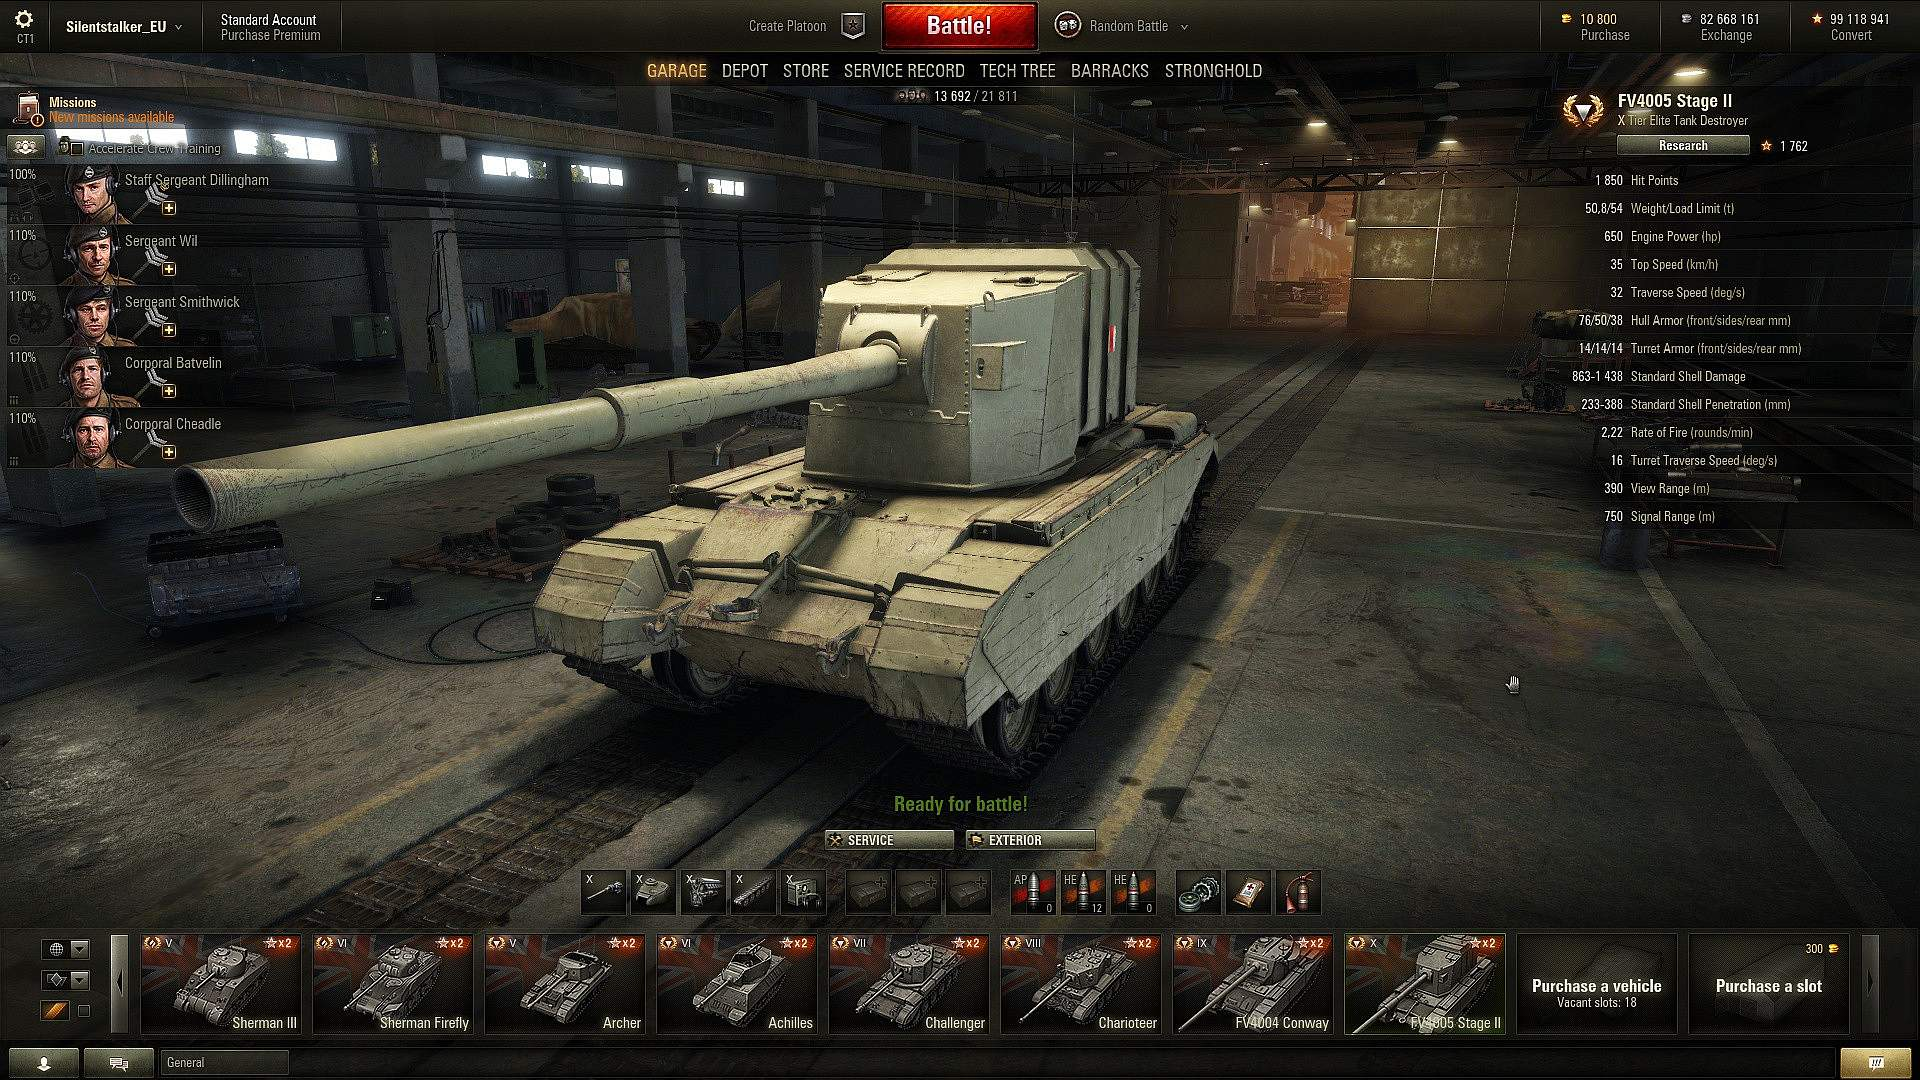 wot tier 9 matchmaking Wot - kv-5 tier 9 match making | world of tanks claus kellerman loading wot - kv-5 | the monster | world of tanks with claus - duration: 10:17.